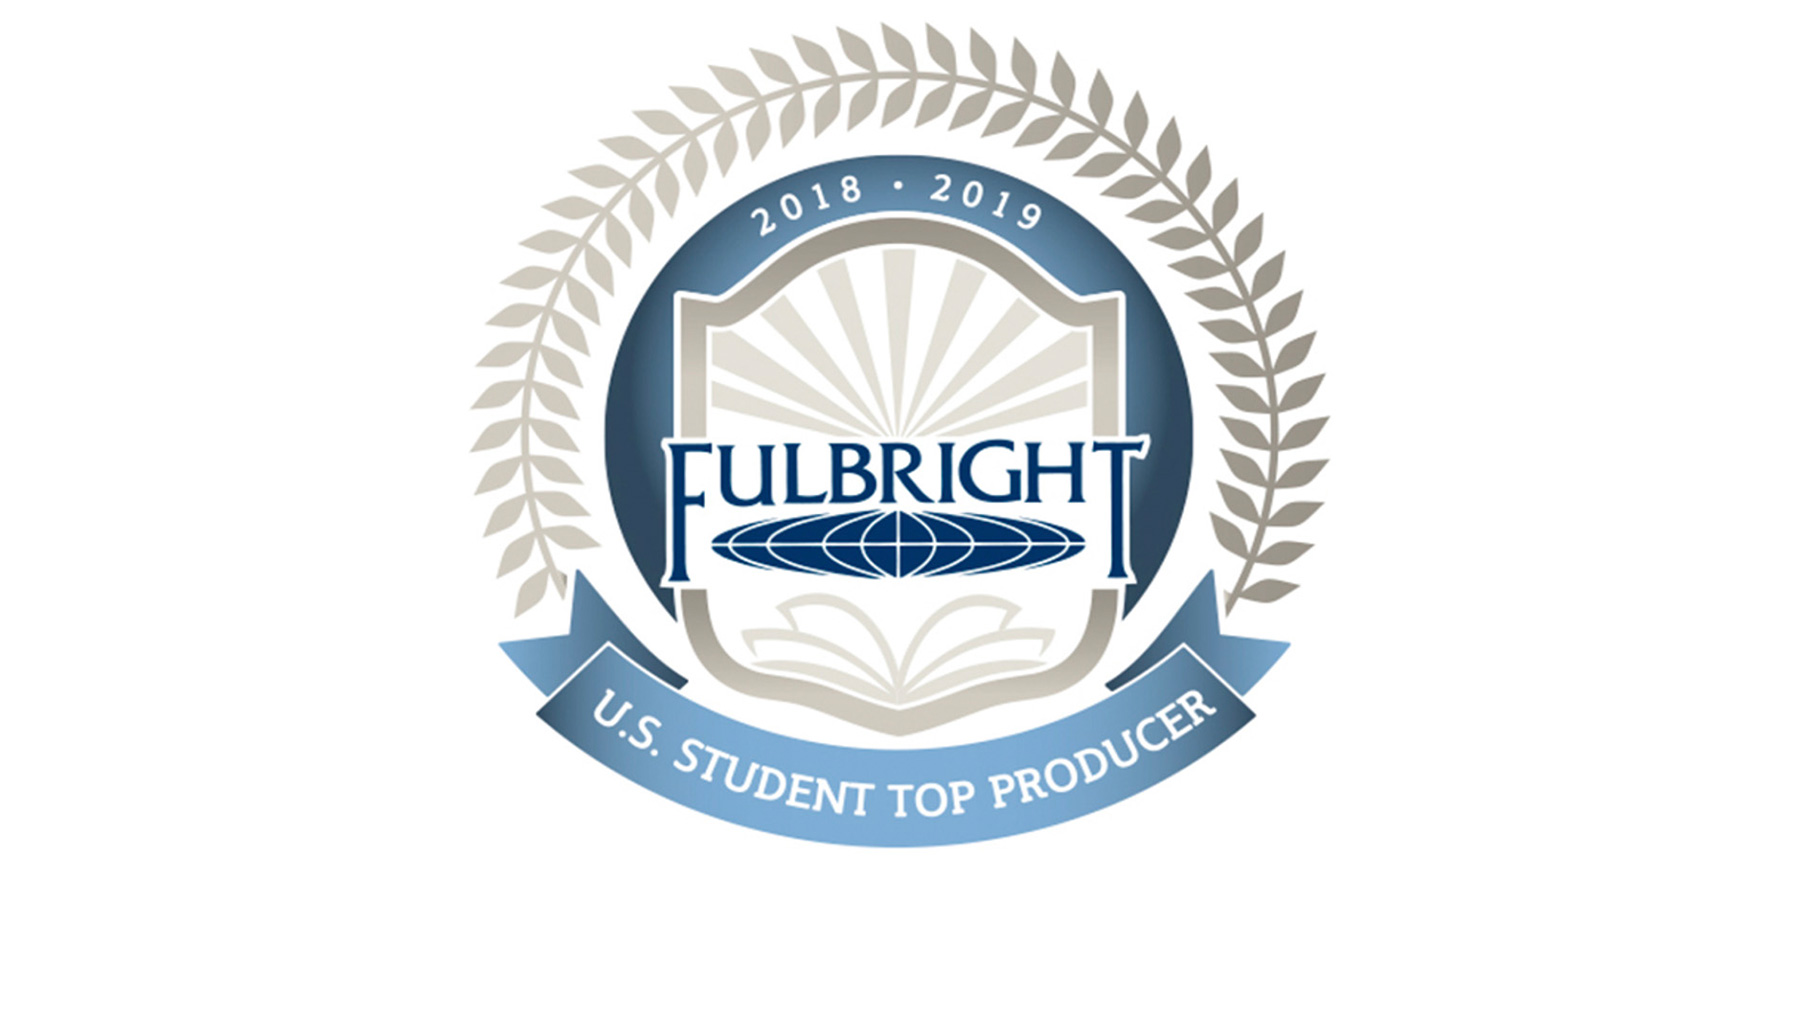 Fulbright 'top student producer' graphic